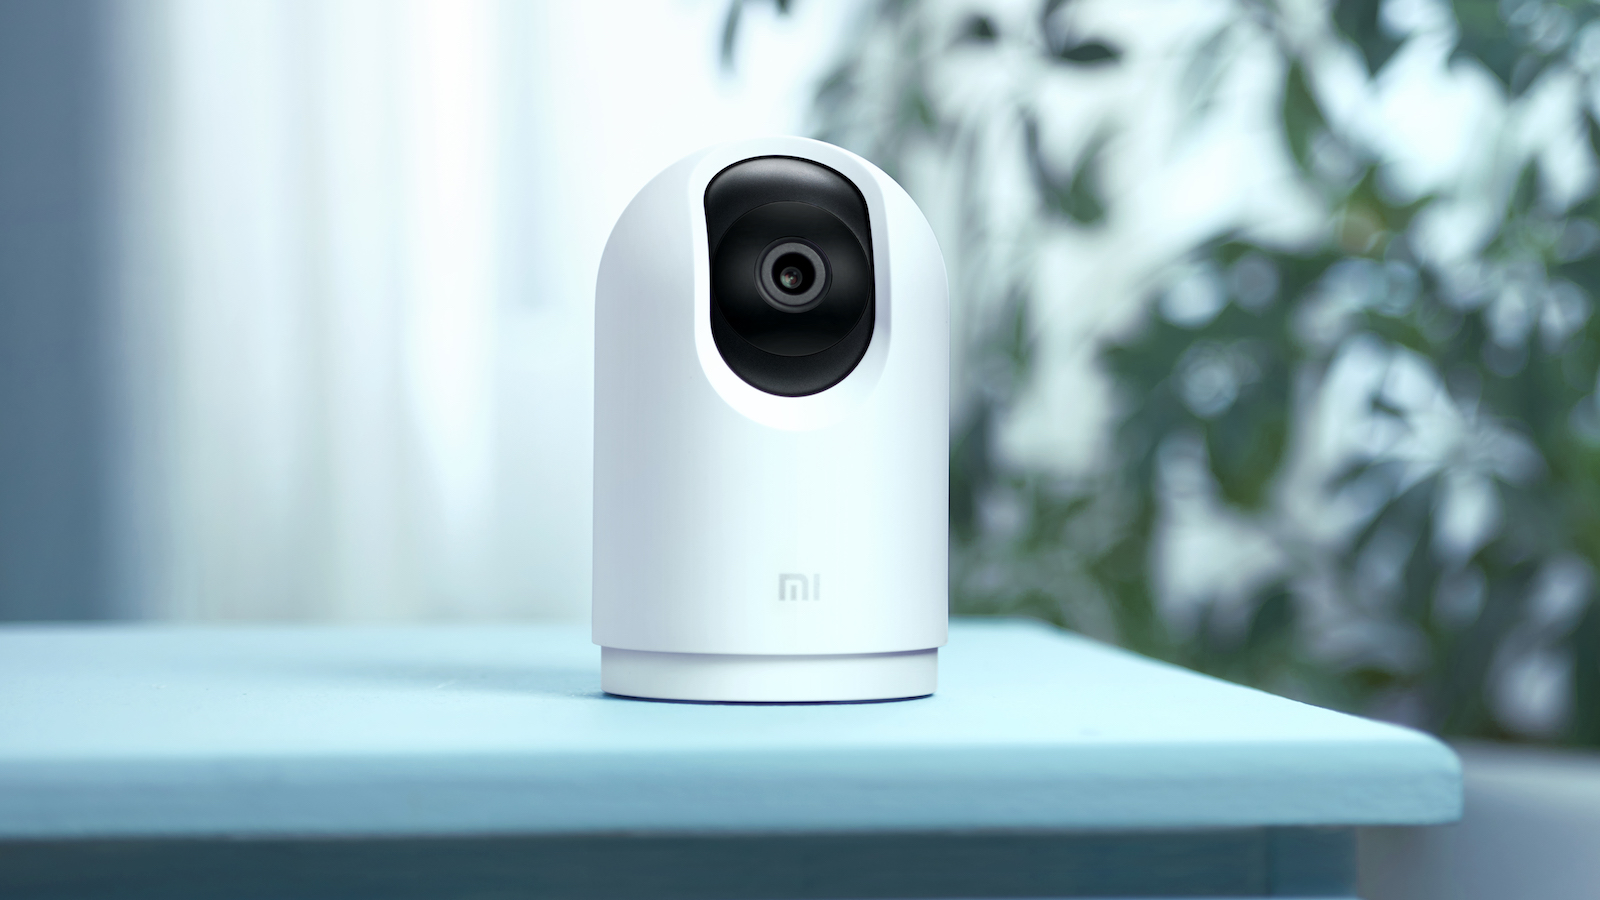 Xiaomi Mi 360° Home Security Camera 2K Pro features AI human detection